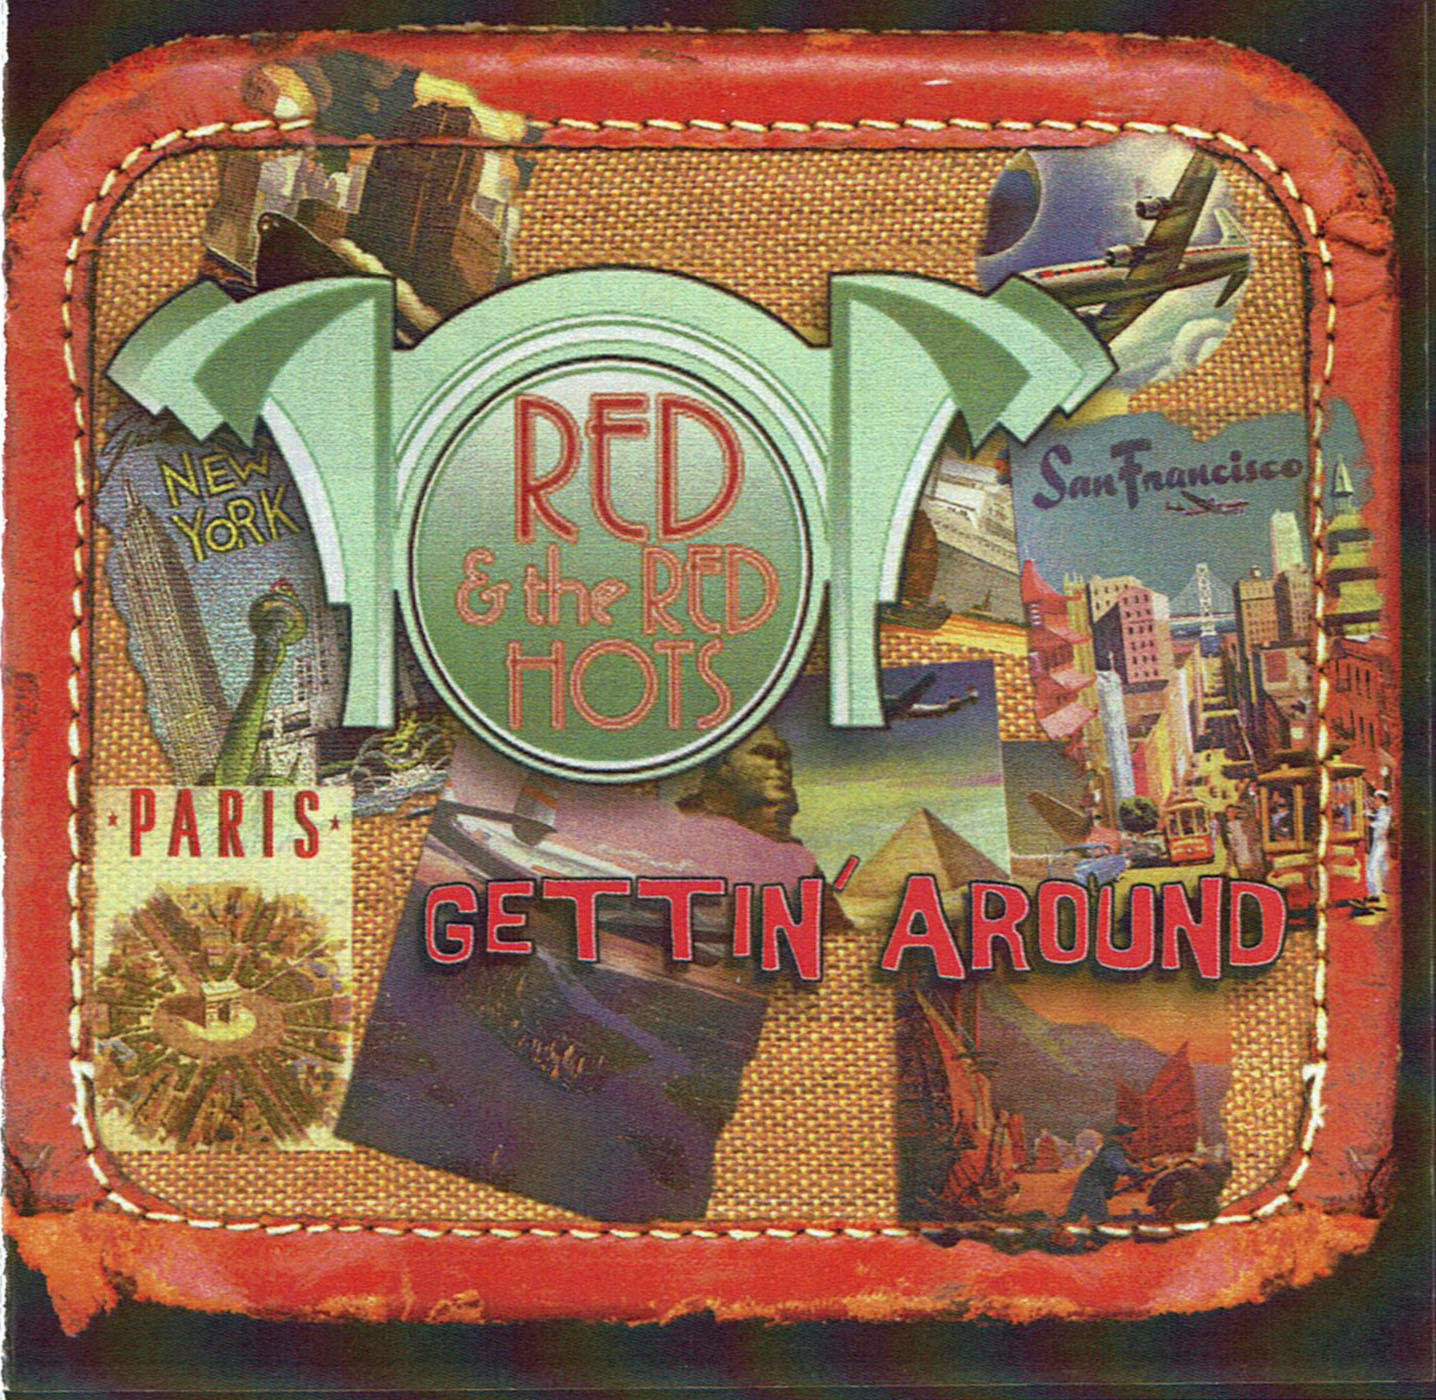 Red & The Red Hots / Gettin' Around * cd & mp3